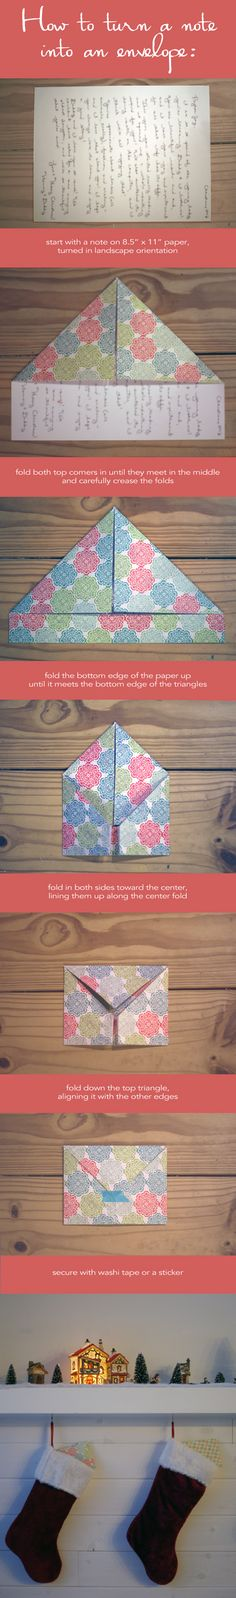 How to Fold a Note into an Envelope great for letters of love at Christmas